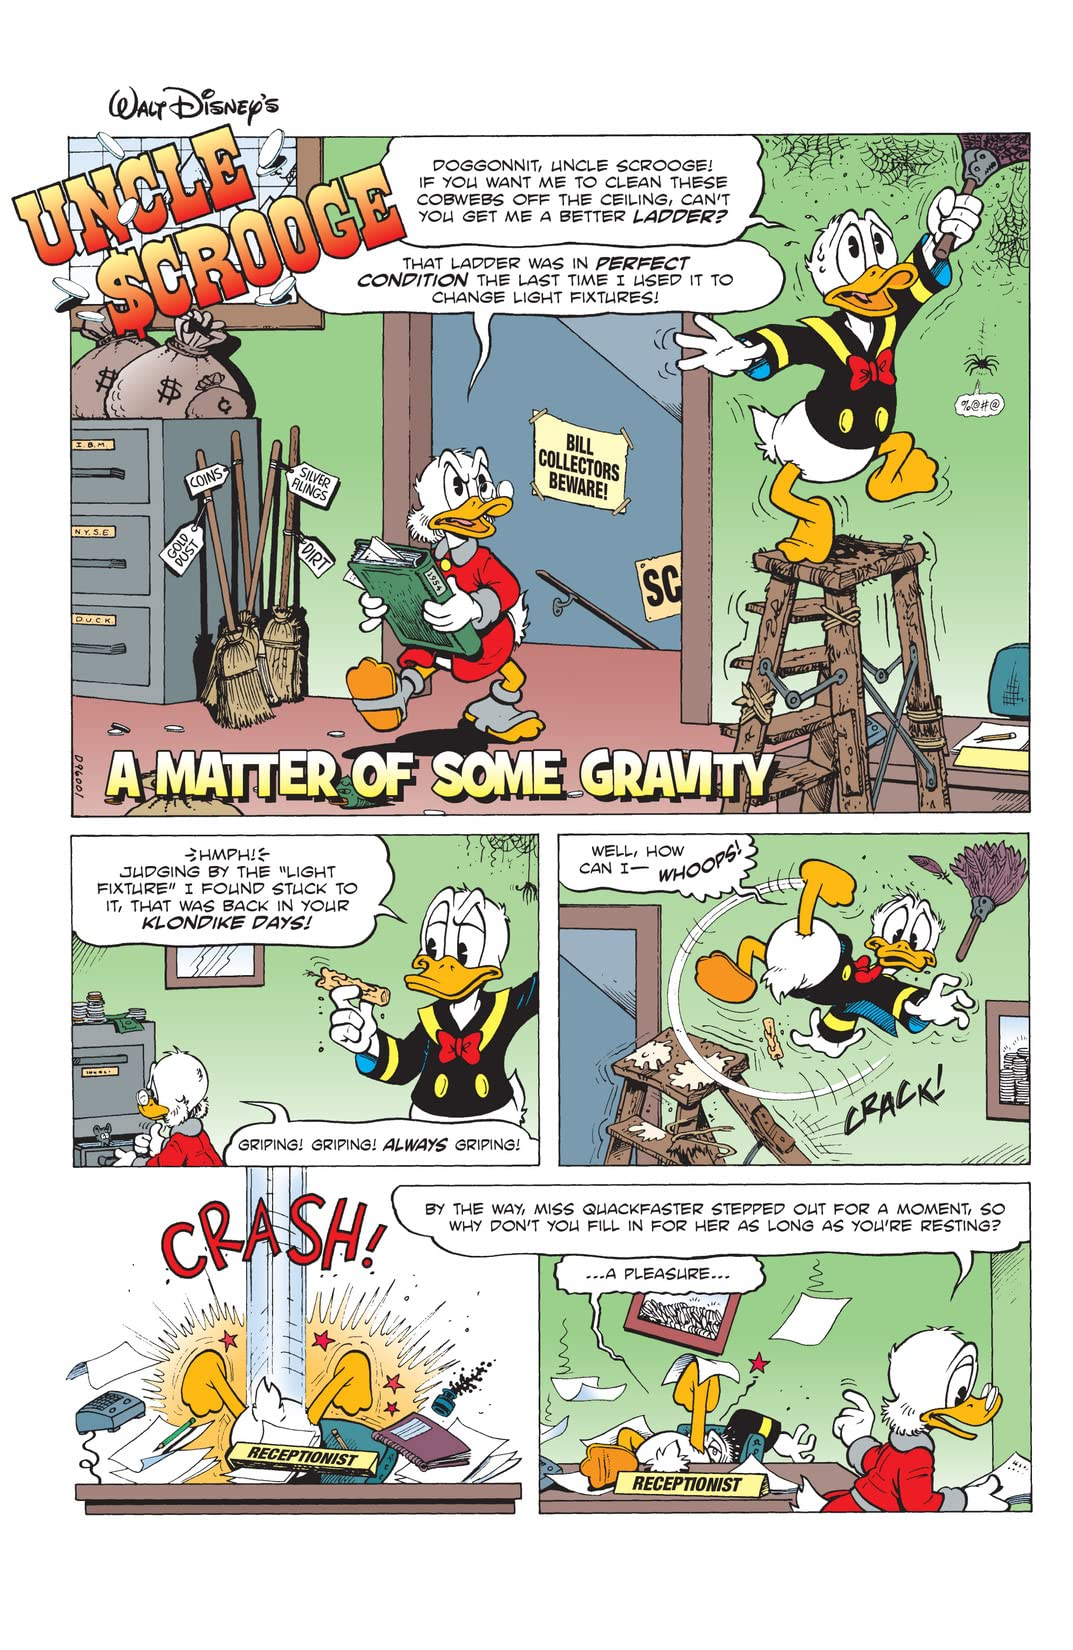 FCBD 2014: Don Rosa's Uncle Scrooge and Donald Duck - A Matter of Serious Gravity